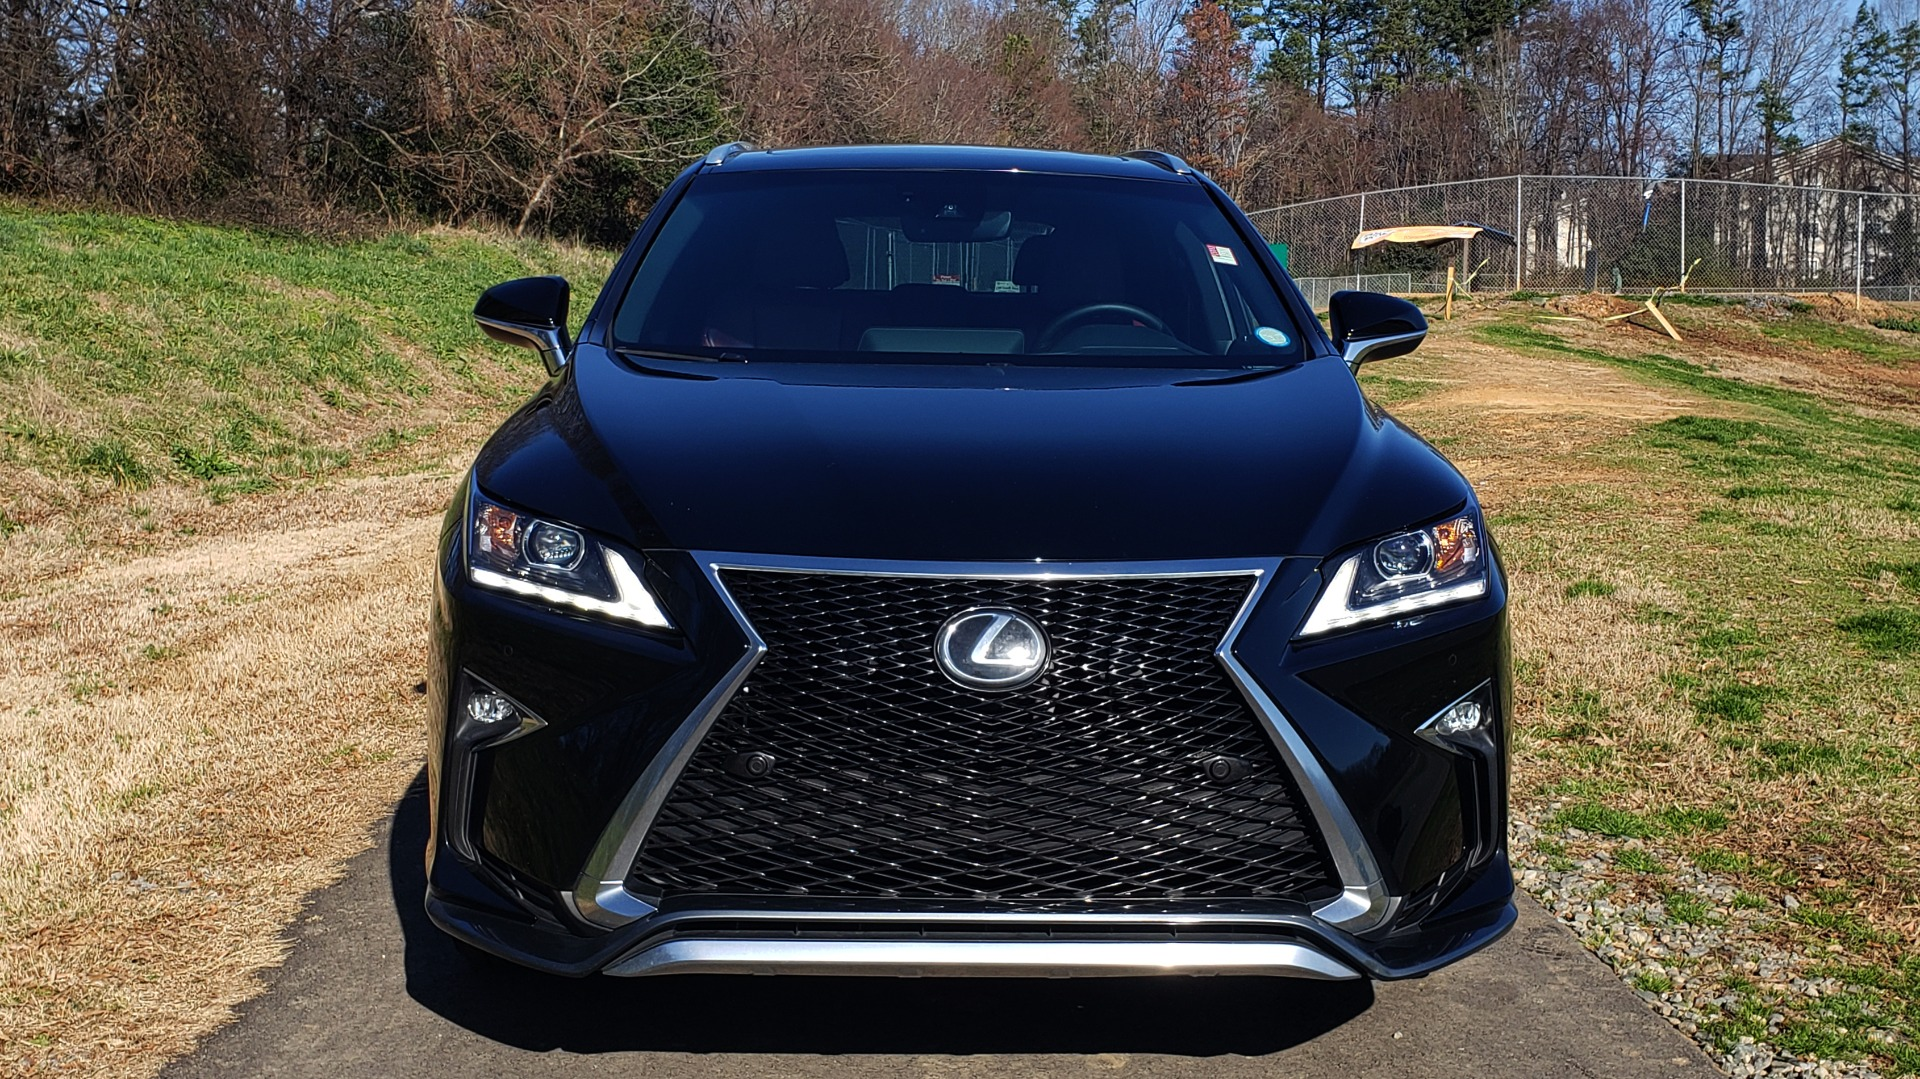 Used 2017 Lexus RX350 AWD F-SPORT / NAV / SUNROOF / BSM / PARK ASST / TOWING / REARVIE for sale Sold at Formula Imports in Charlotte NC 28227 8